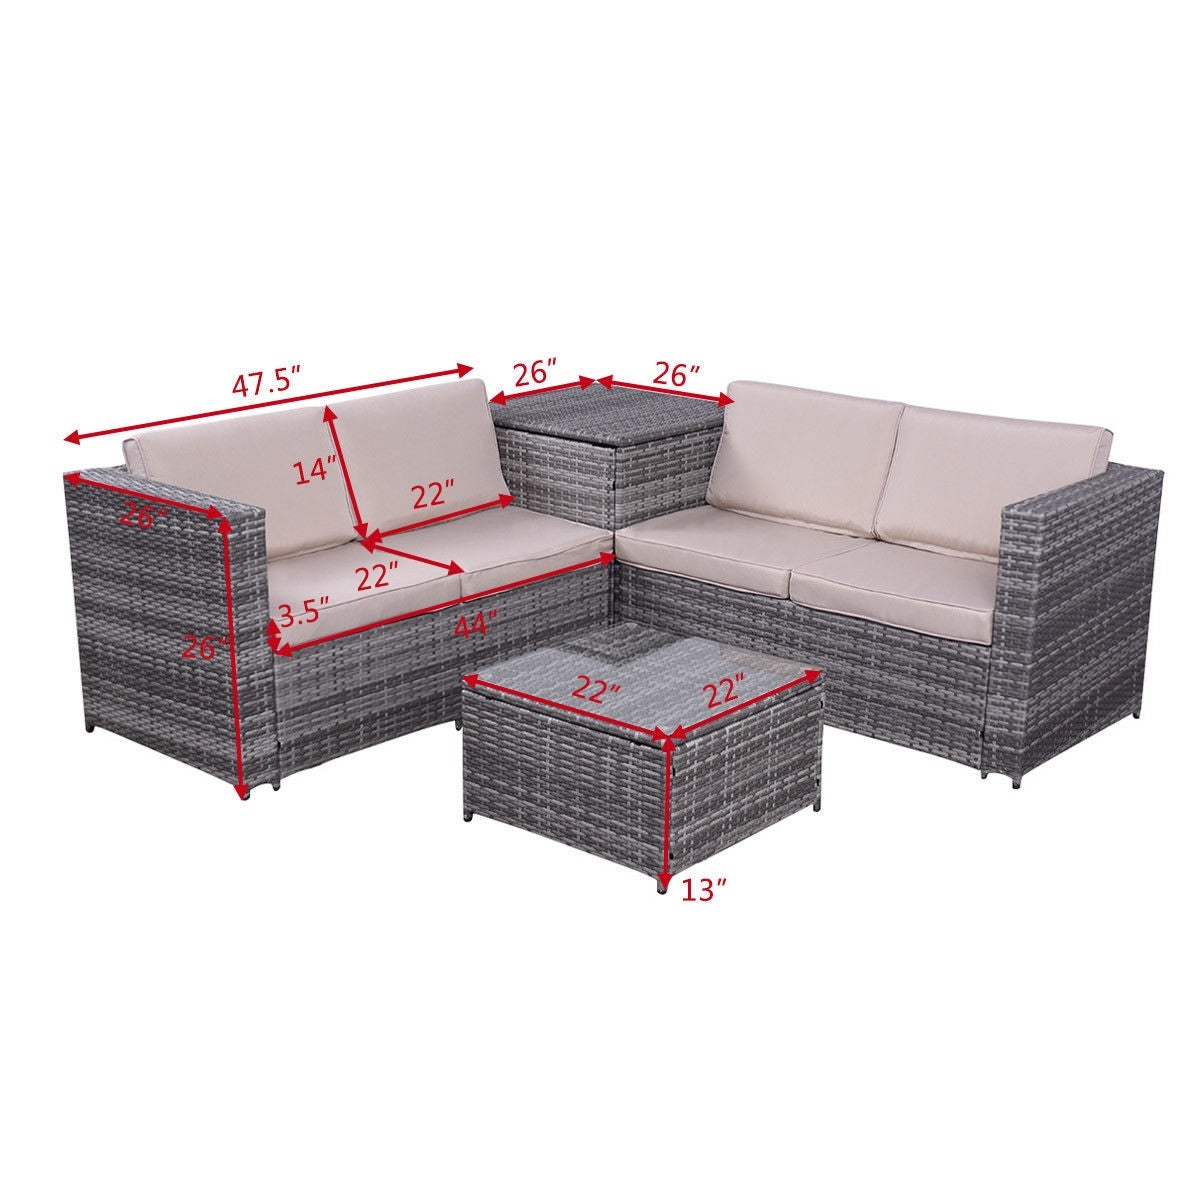 Shop Costway 4PCS Patio Rattan Wicker Furniture Set Sofa Loveseat Cushioned  W/Storage Box   As Pic   Free Shipping Today   Overstock.com   16339809